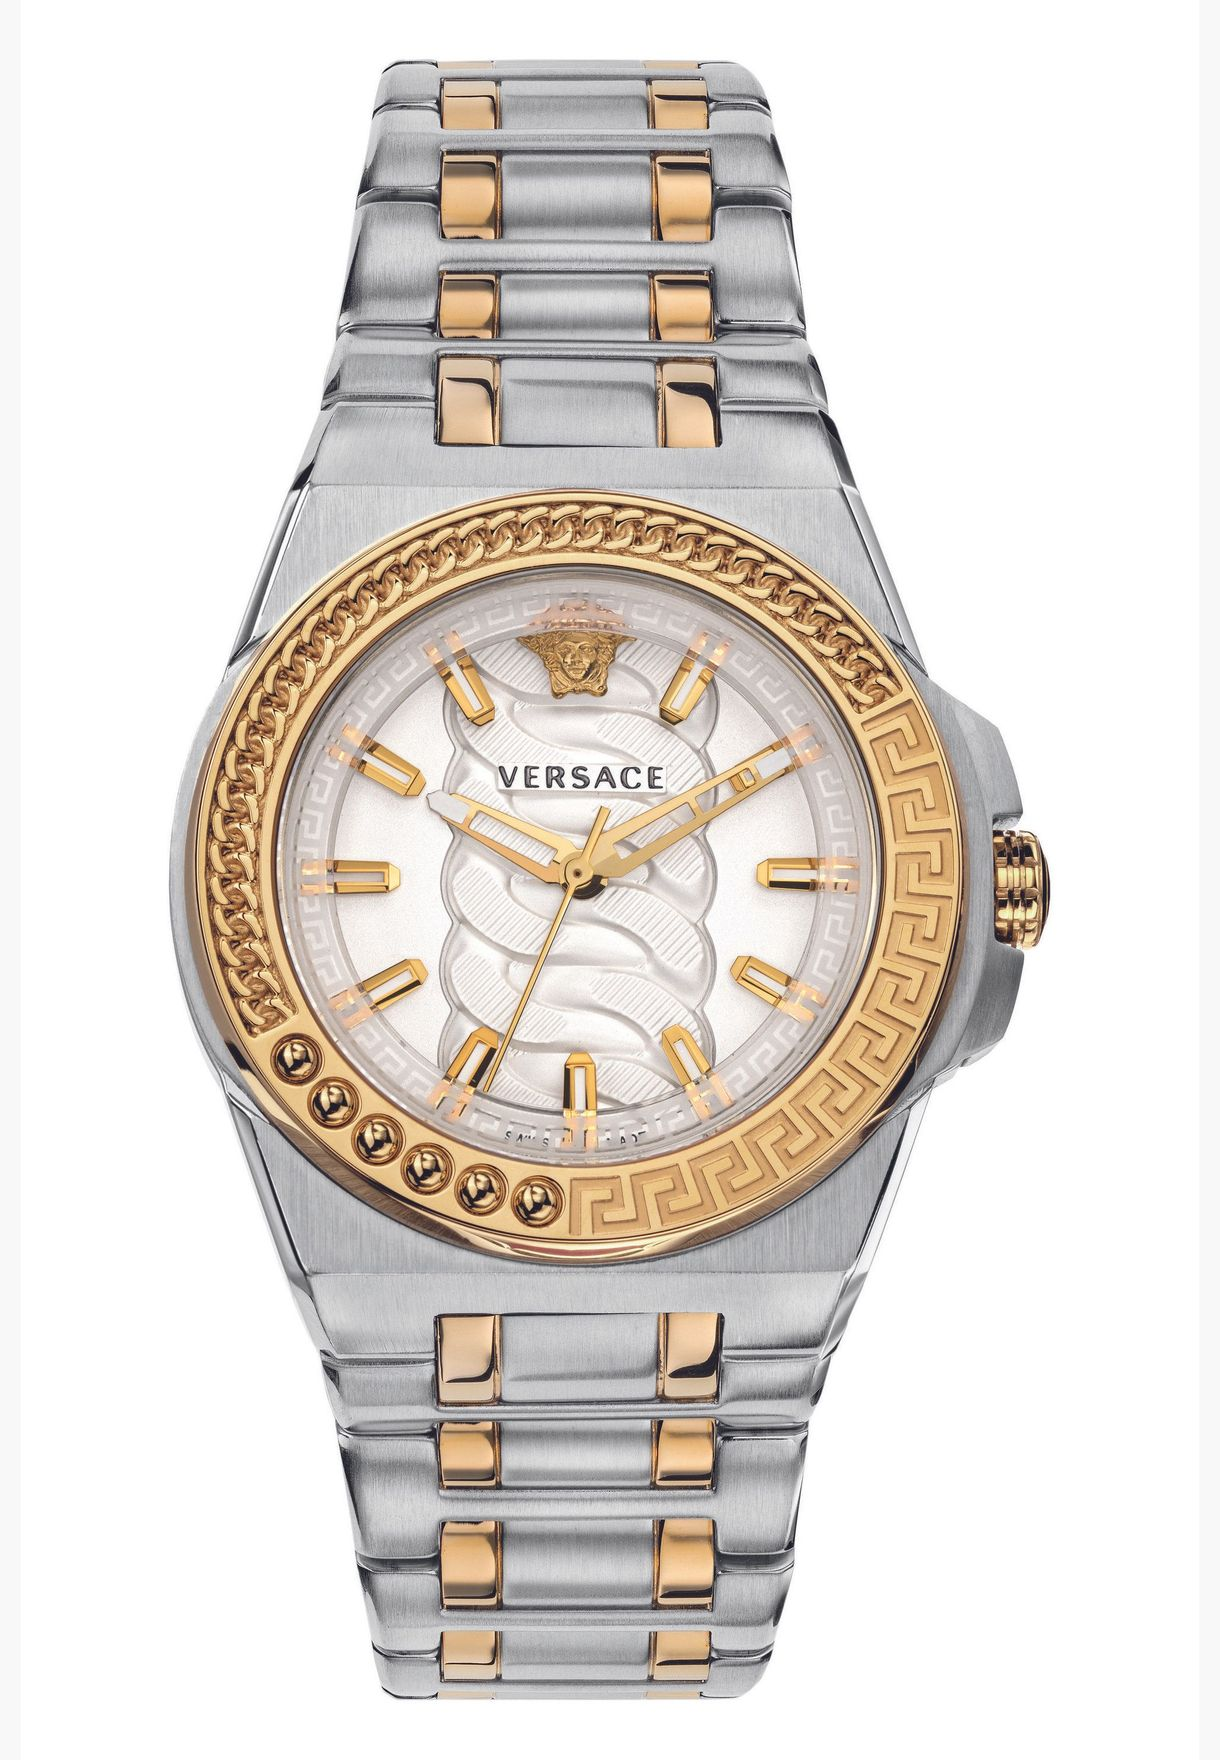 Versace CHAIN REACTION stainless steel Watch for Women - VEHD00420